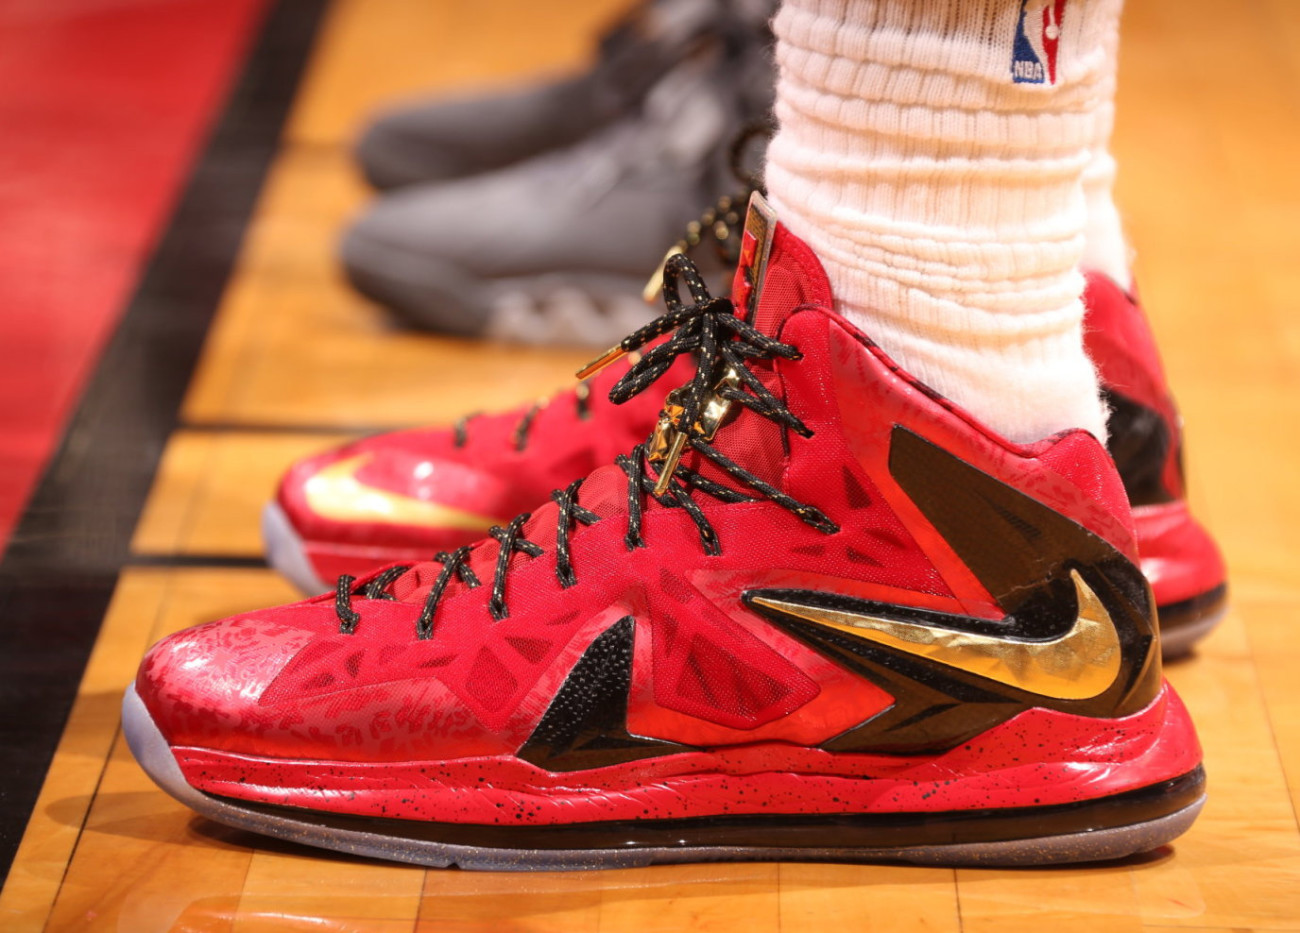 Lebron Wins his 2nd Title, Celebrate with the Nike Lebron ...  Lebron 10 Championship Red